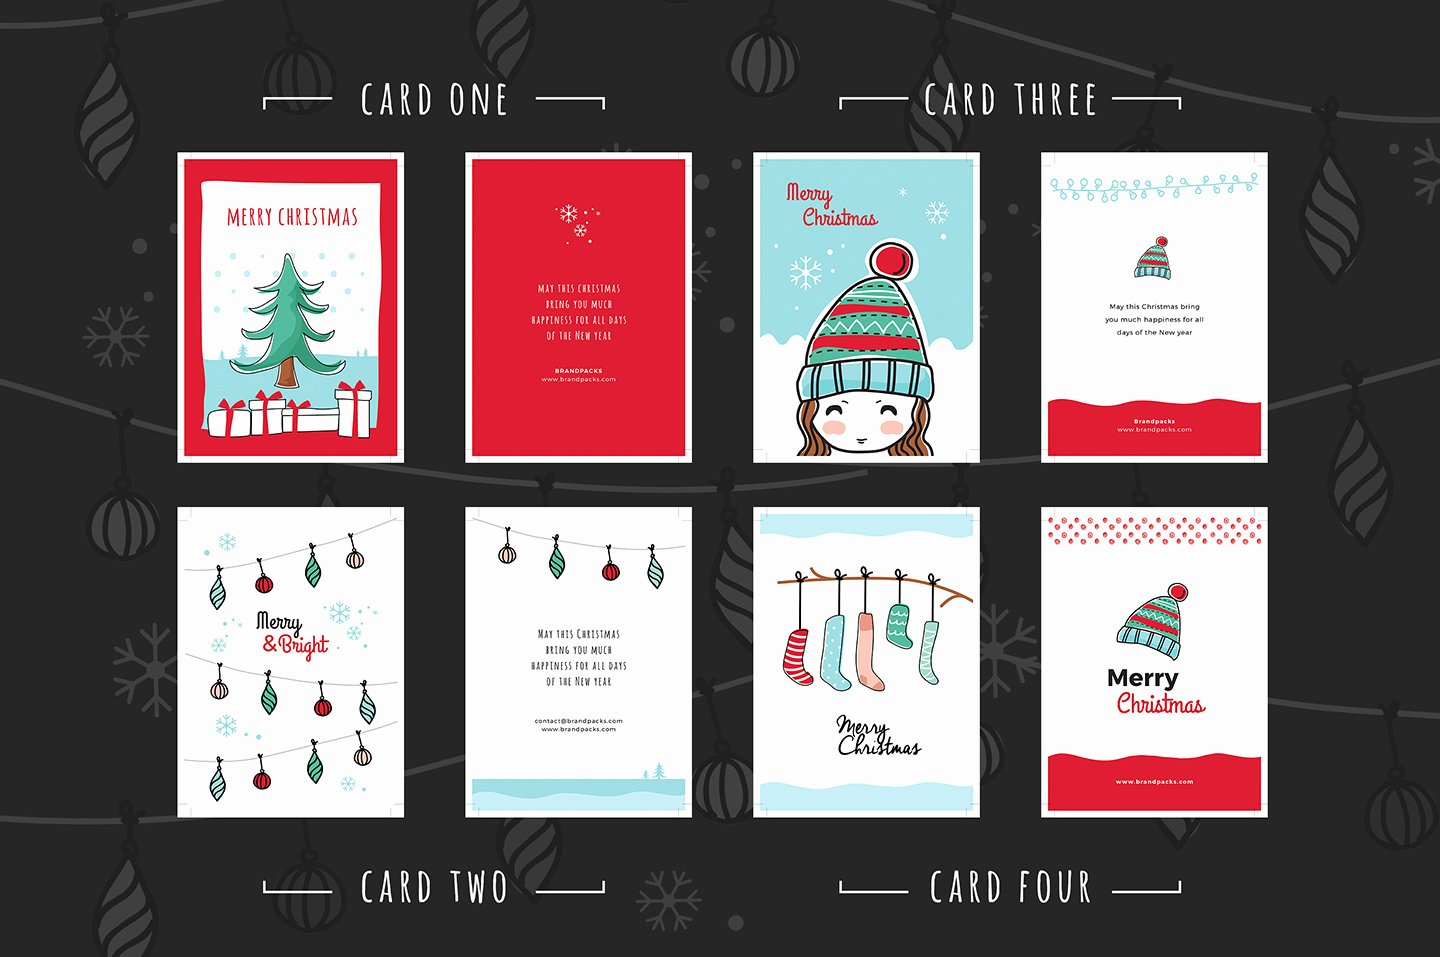 Christmas Card Template Photoshop Lovely Free Christmas Card Templates for Shop & Illustrator